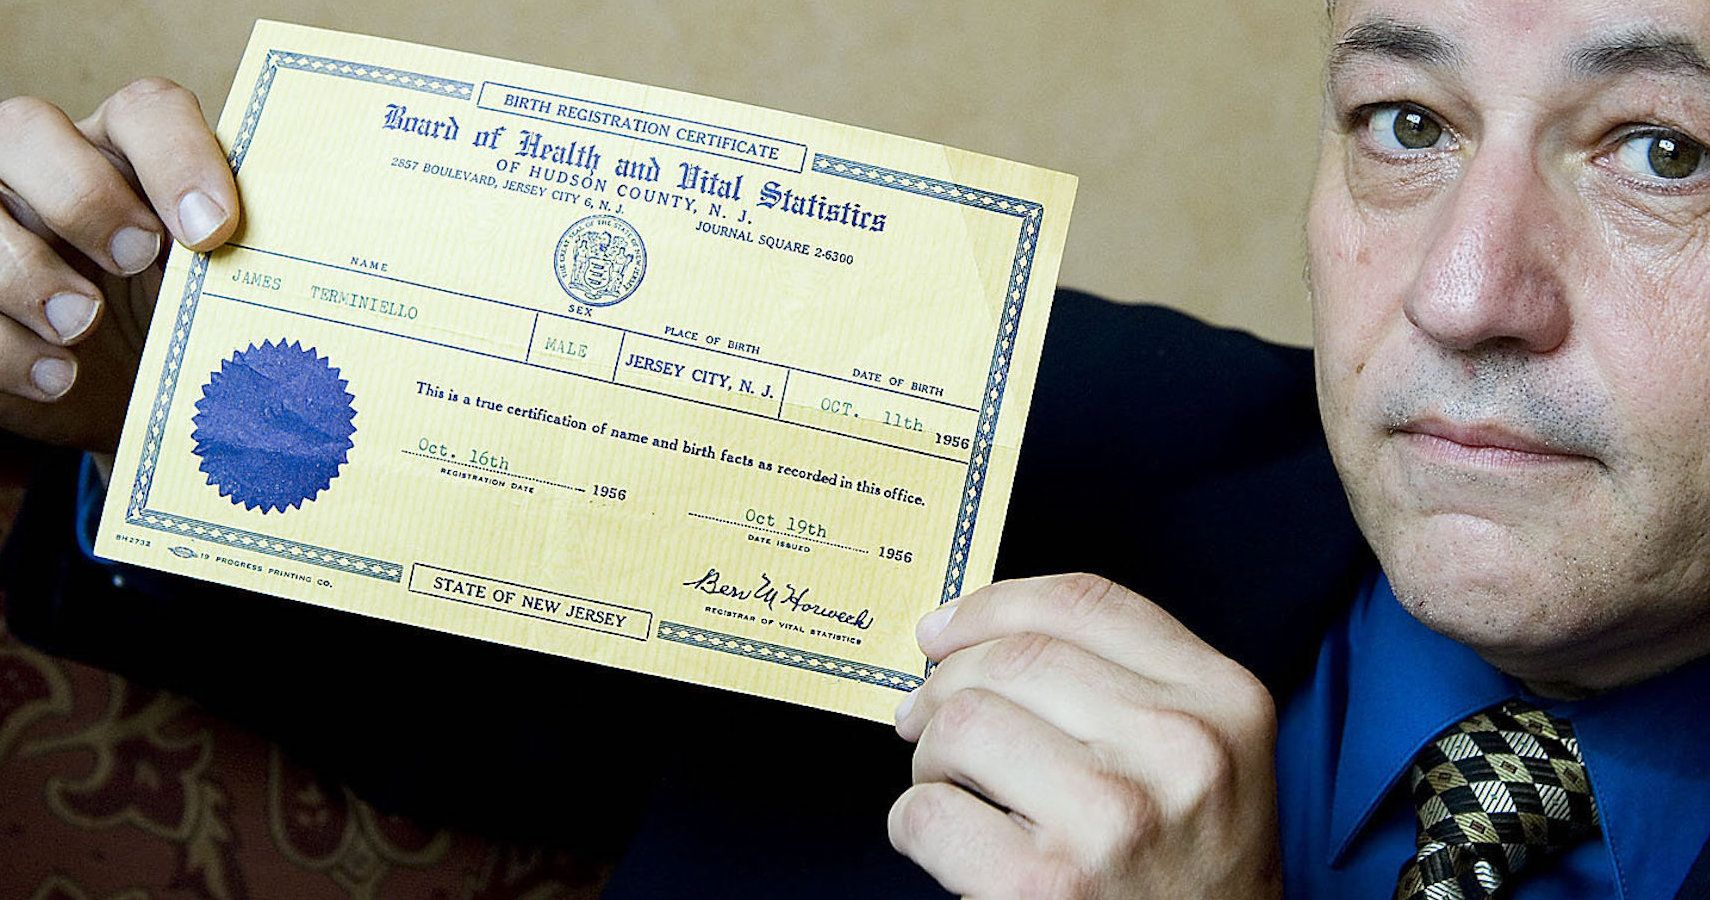 Gender Neutral Birth Certificates Are Now Available In New Jersey